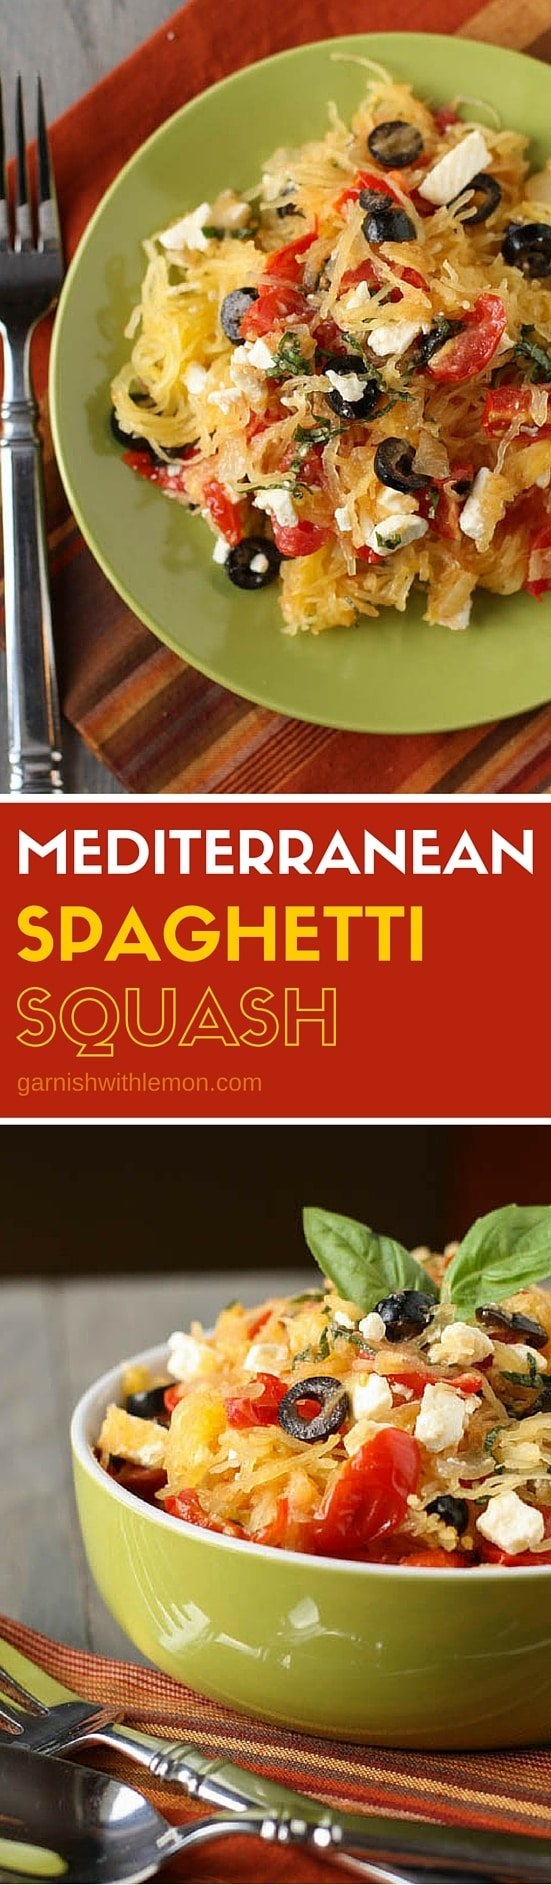 Looking for Meatless Monday dinner recipes? This baked Mediterranean Spaghetti Squash is so fresh and filling you won't even miss the meat!